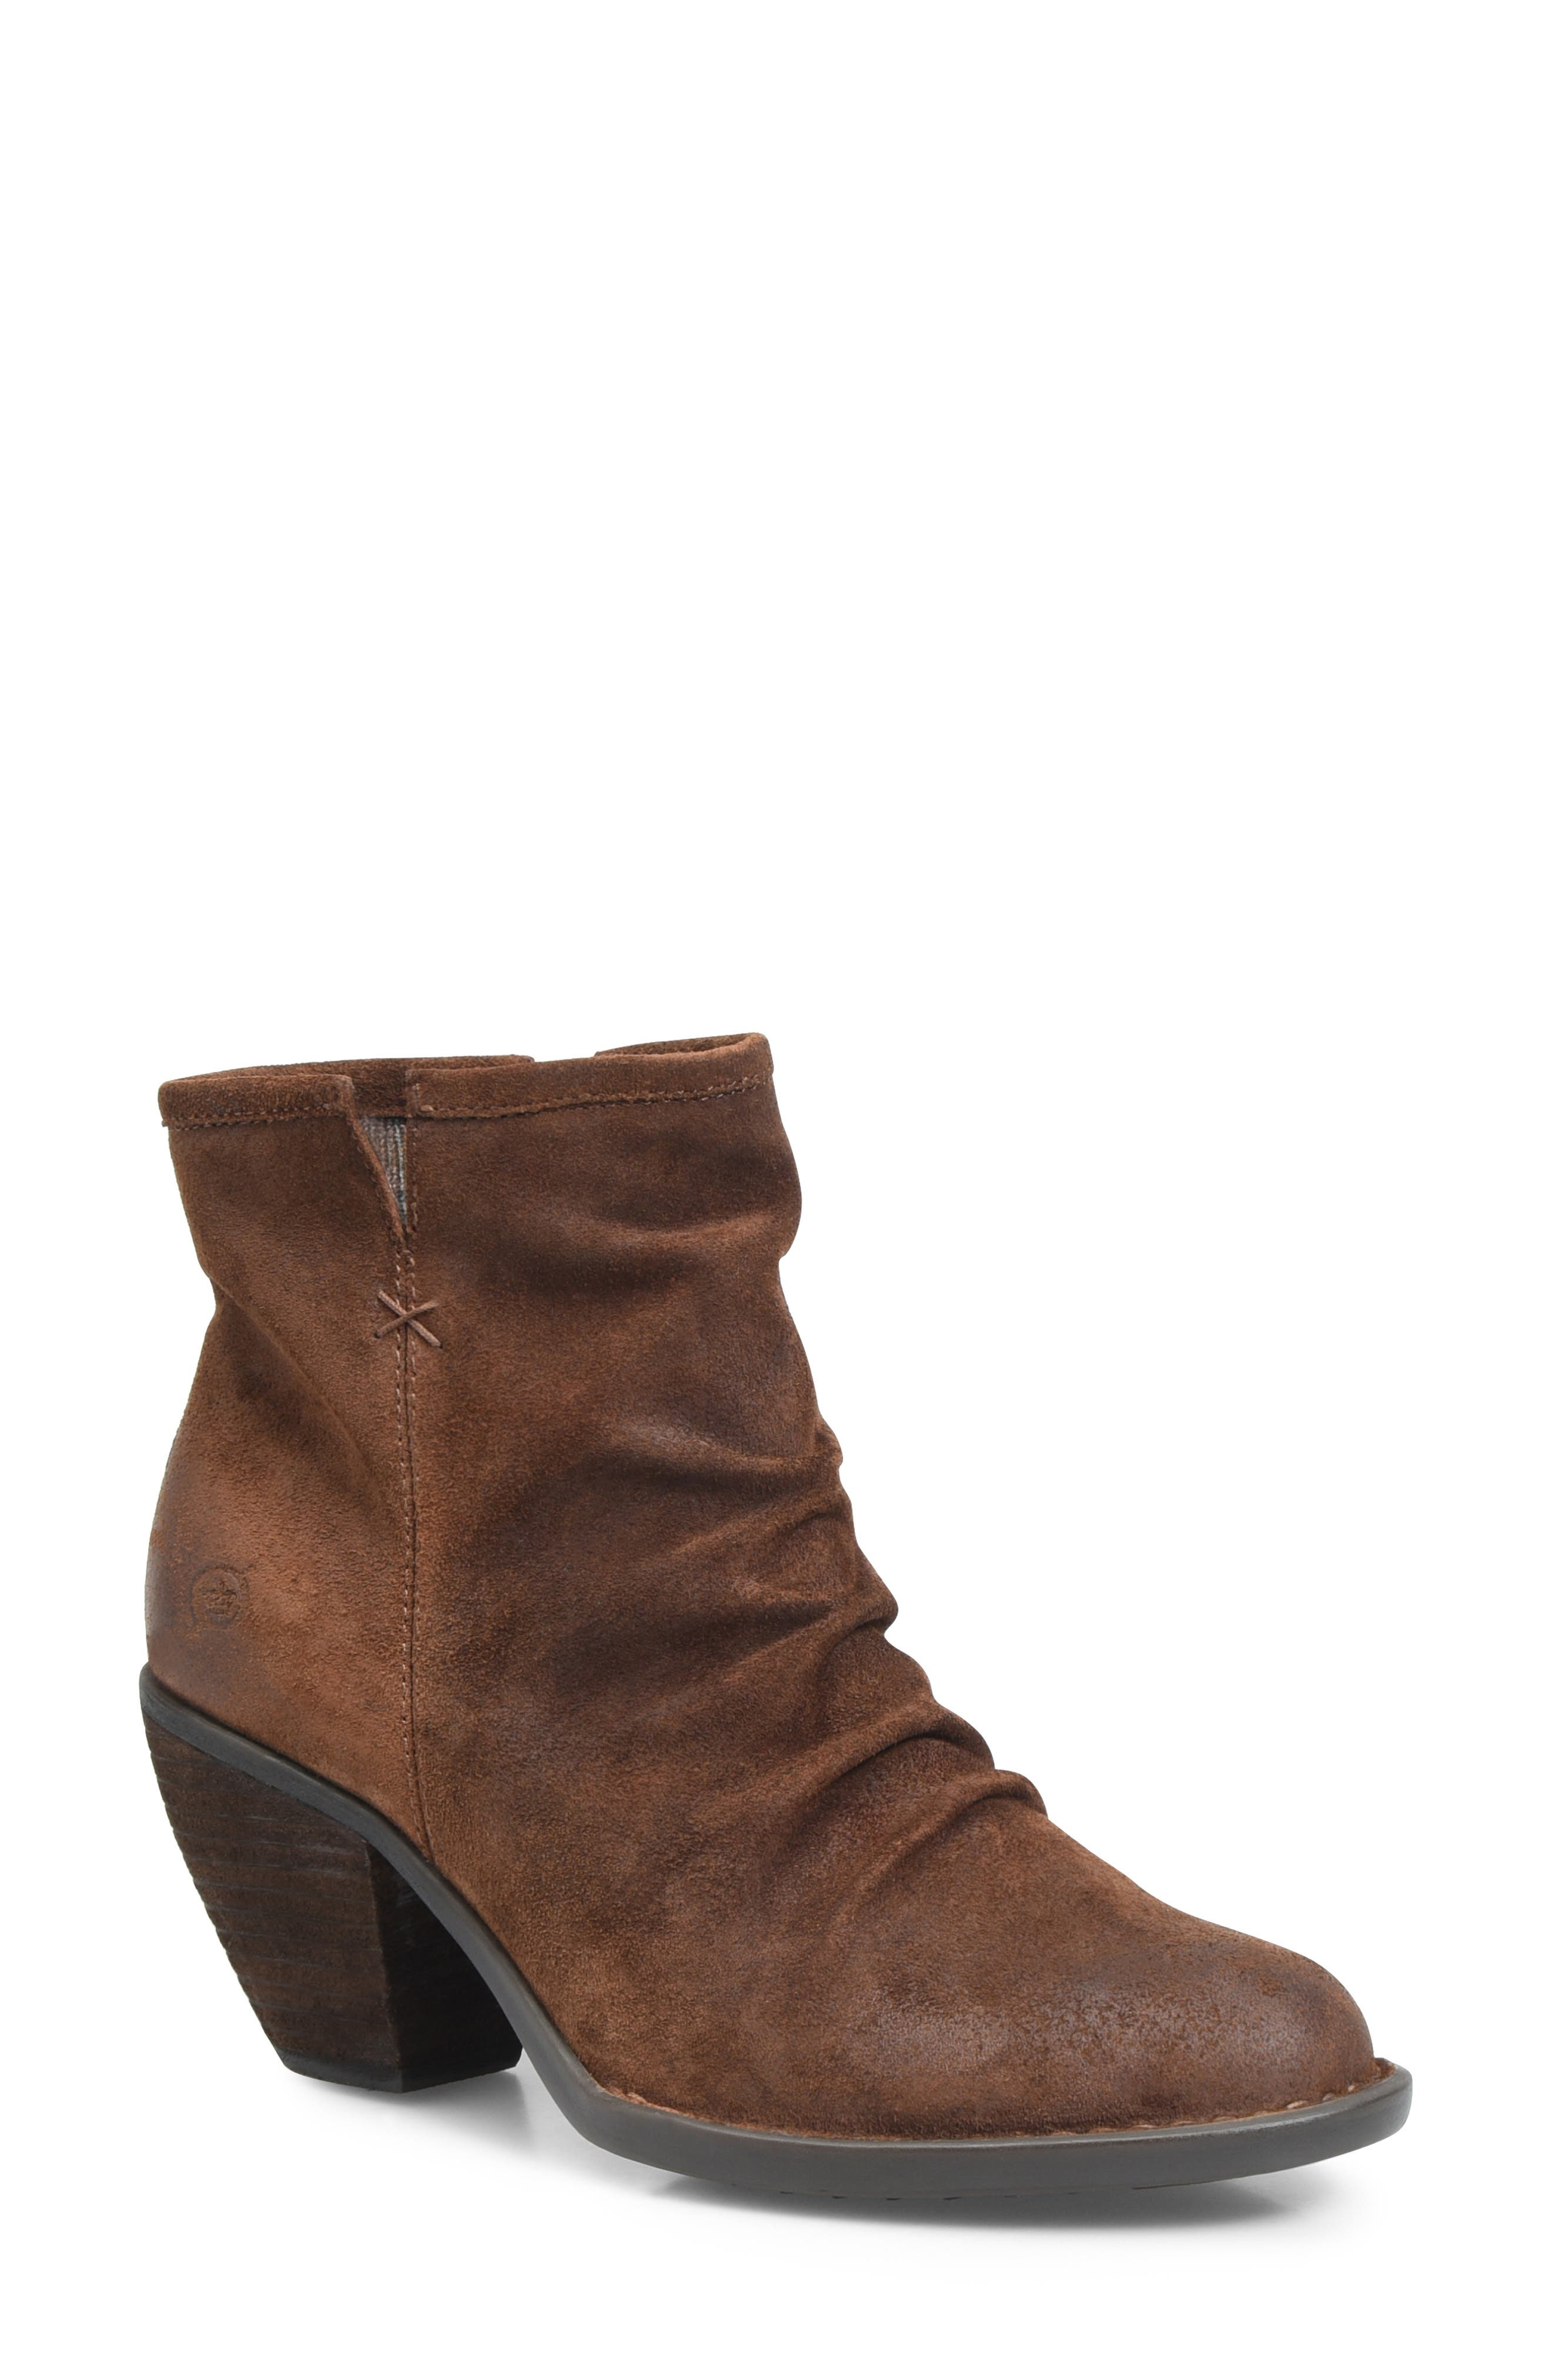 B?rn Aire Bootie, Brown